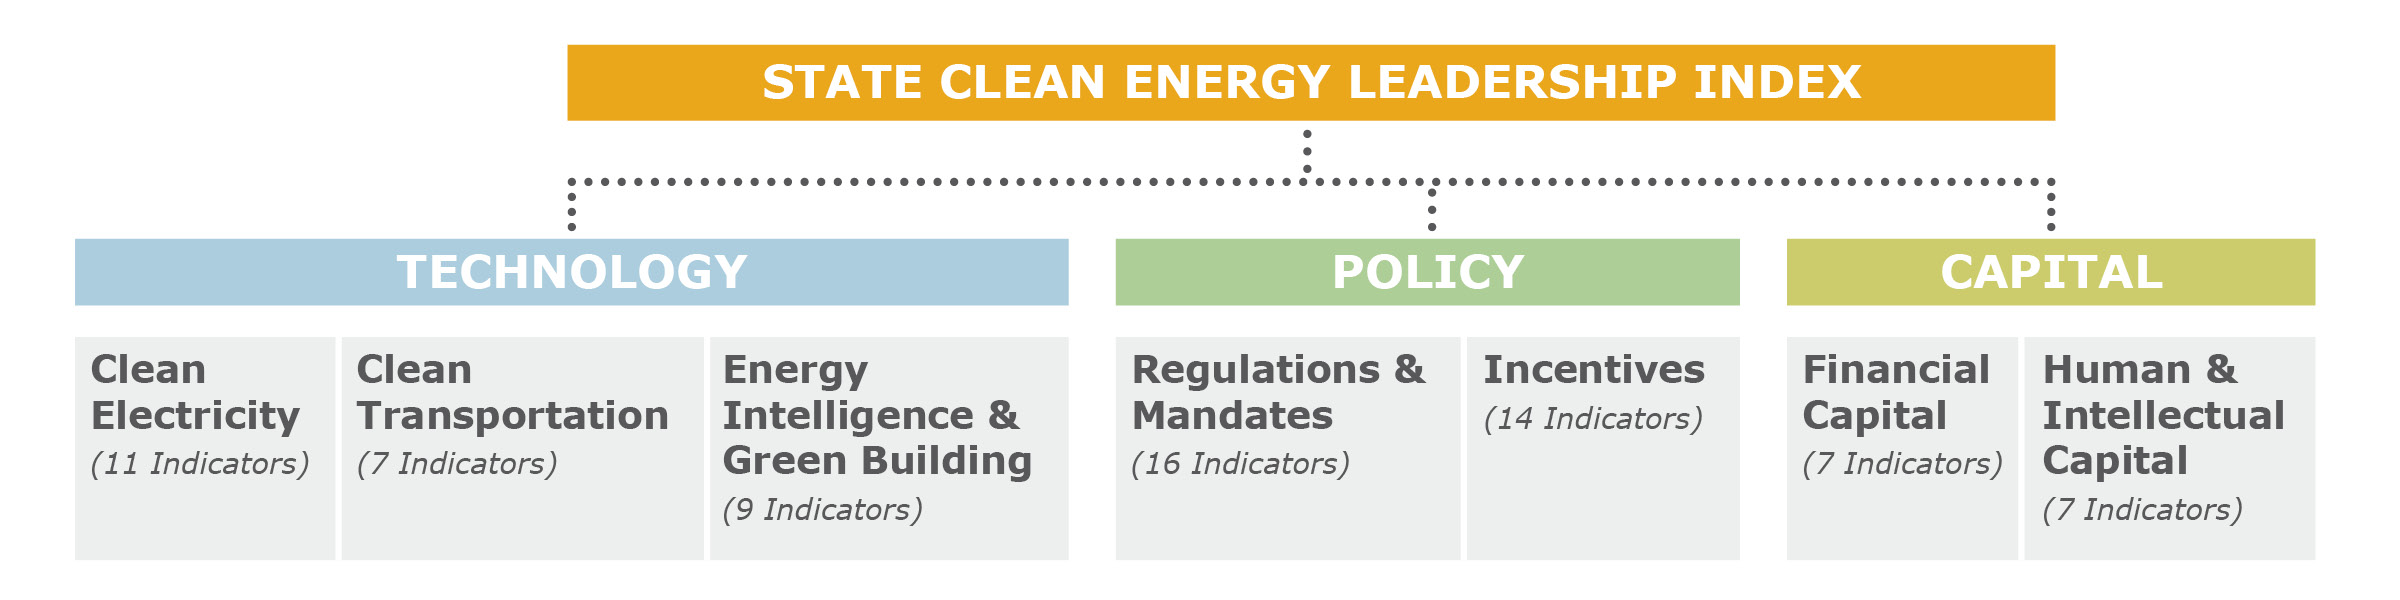 State Clean Energy Index categories